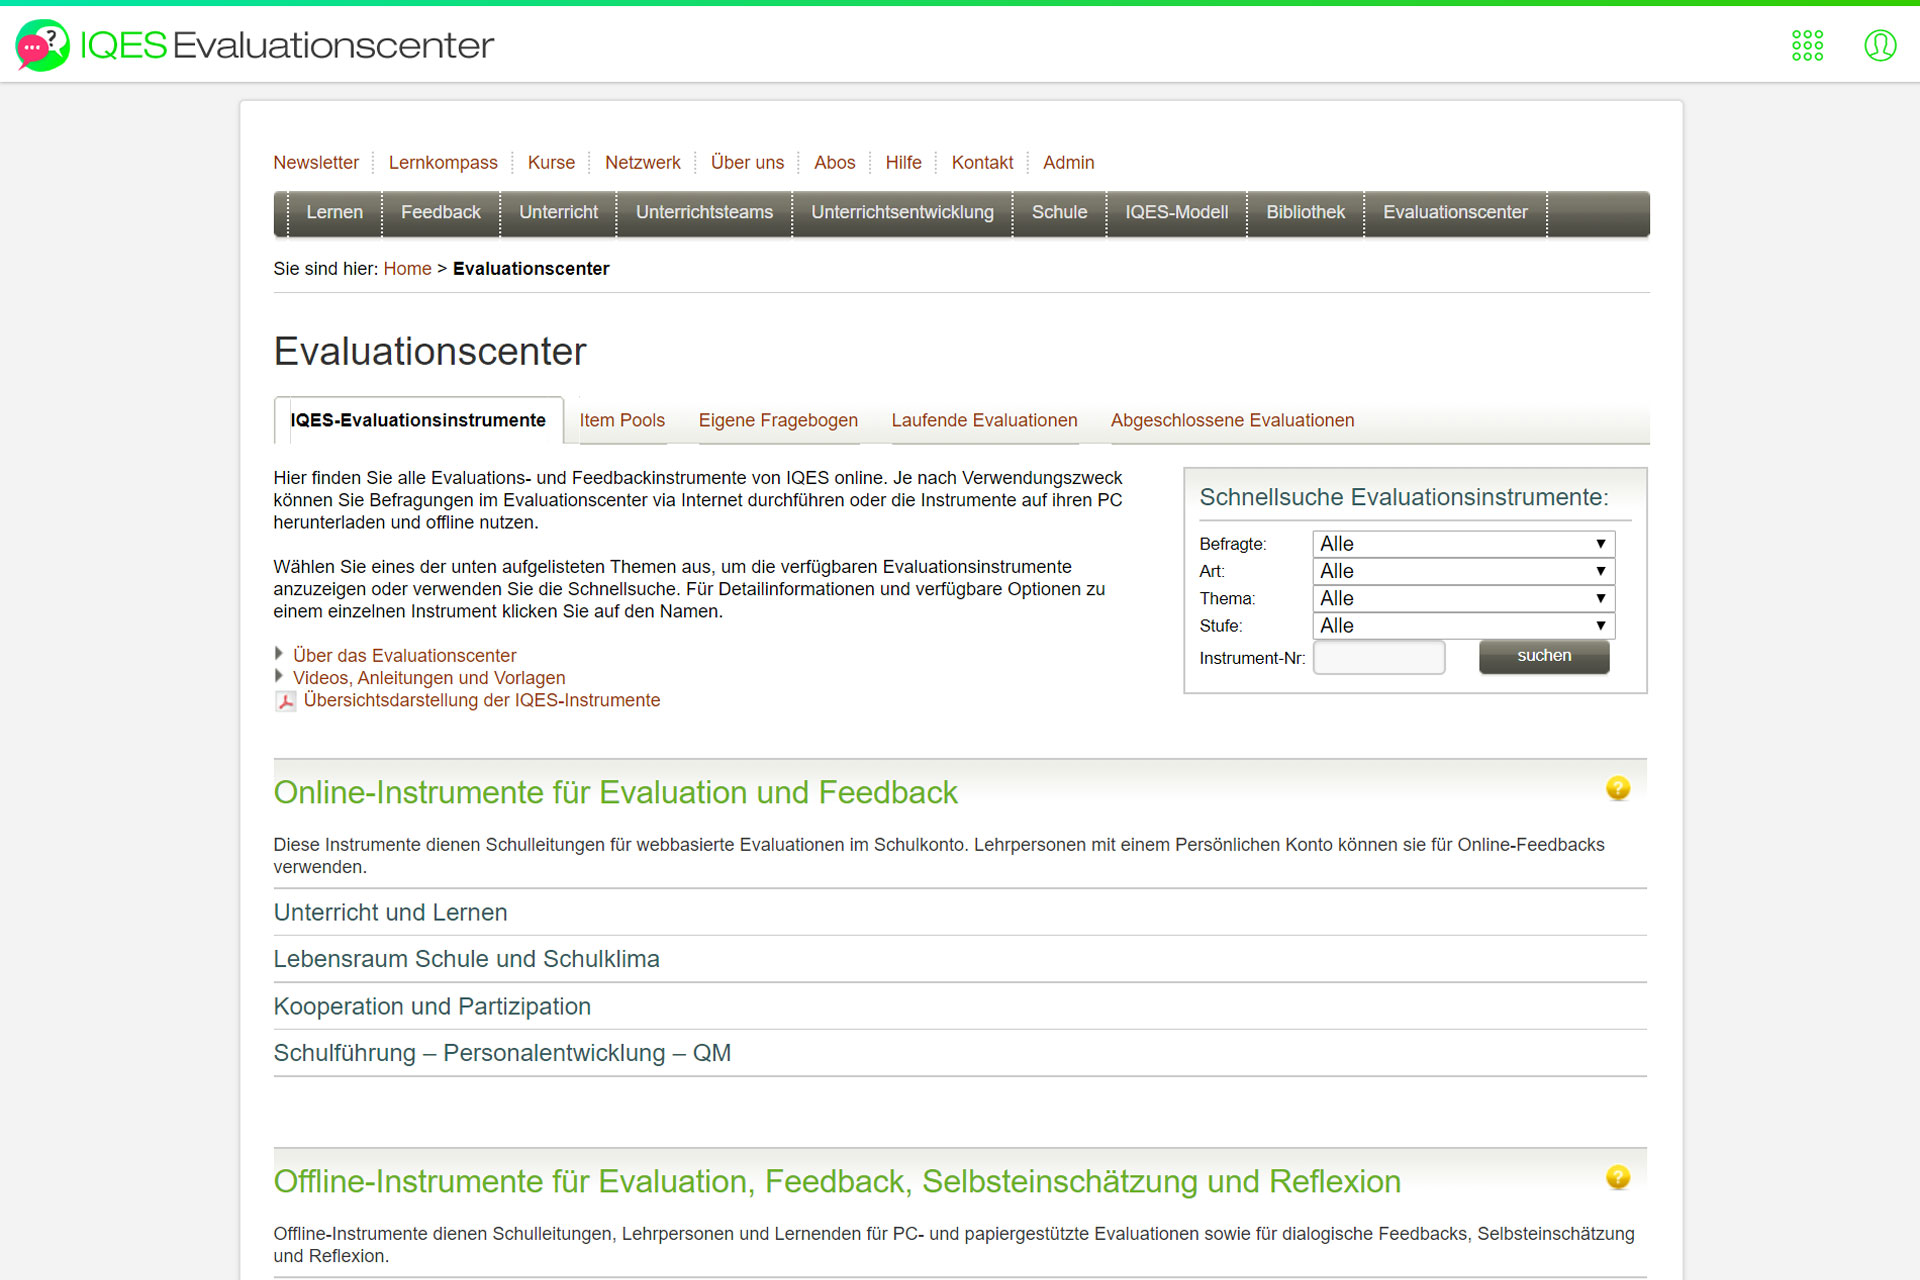 Screenshot Evaluationscenter IQES-Evaluationsinstrumente